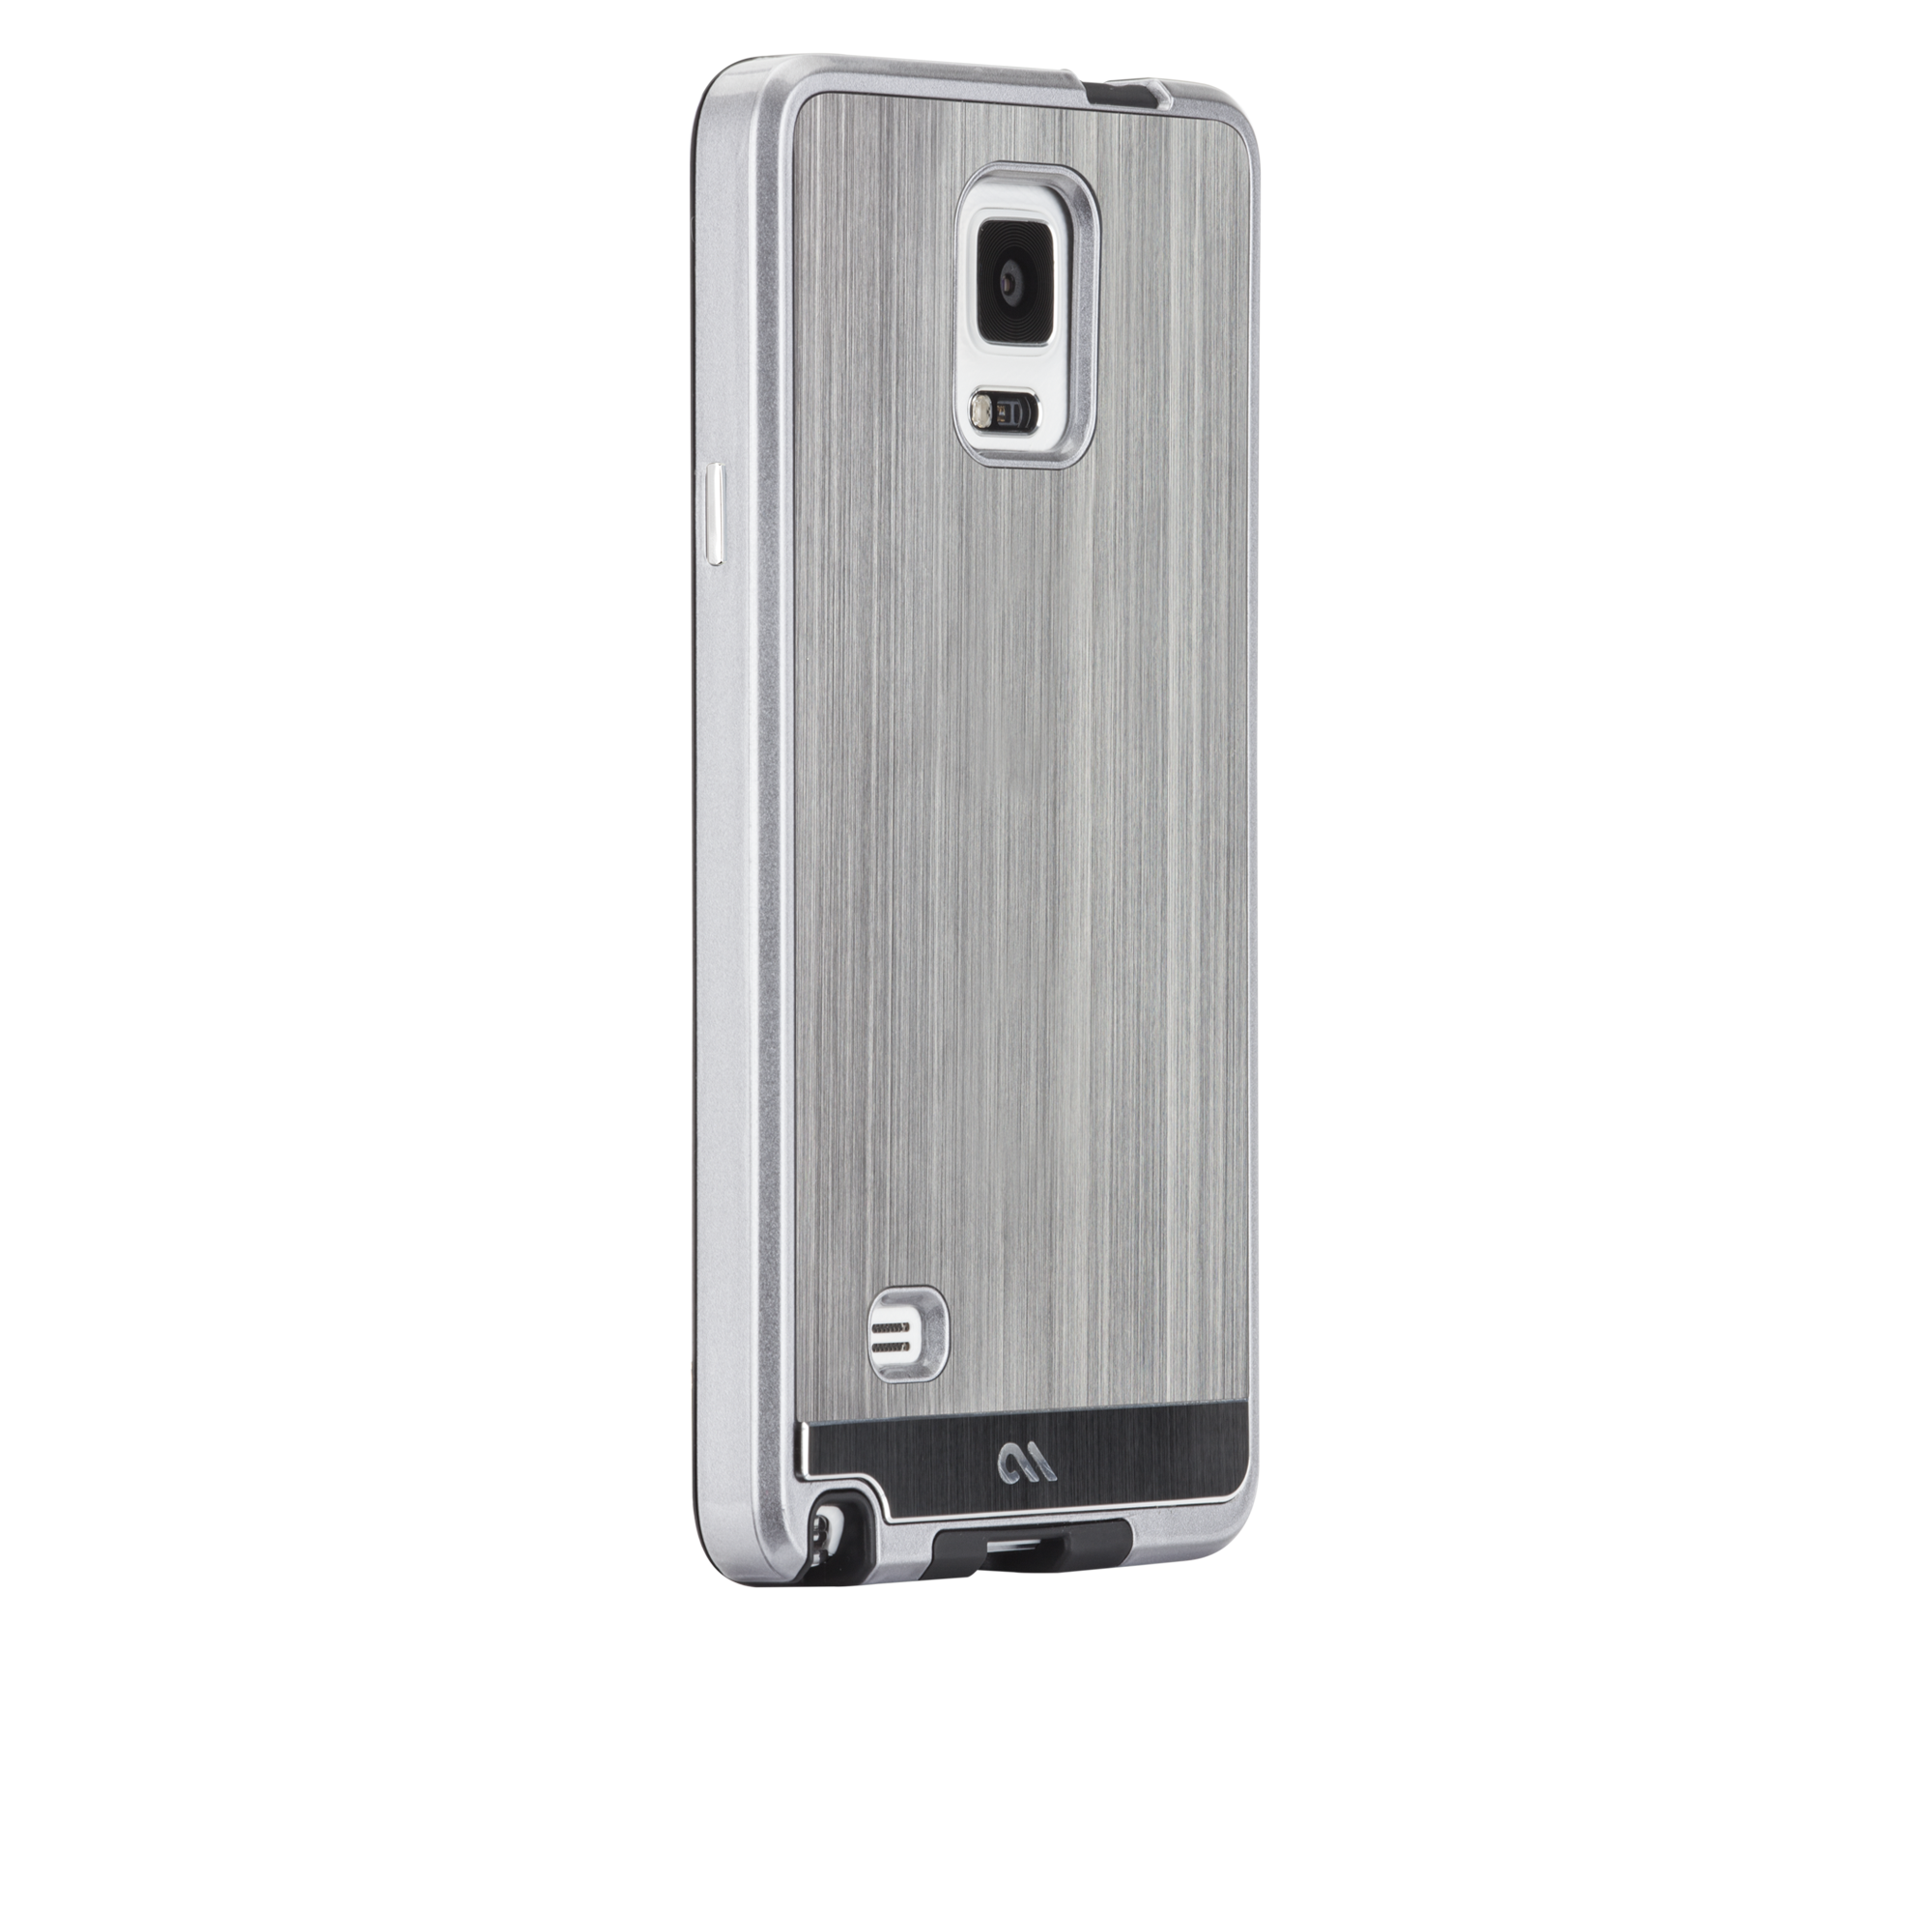 Brushed Aluminum Case - Gunmetal